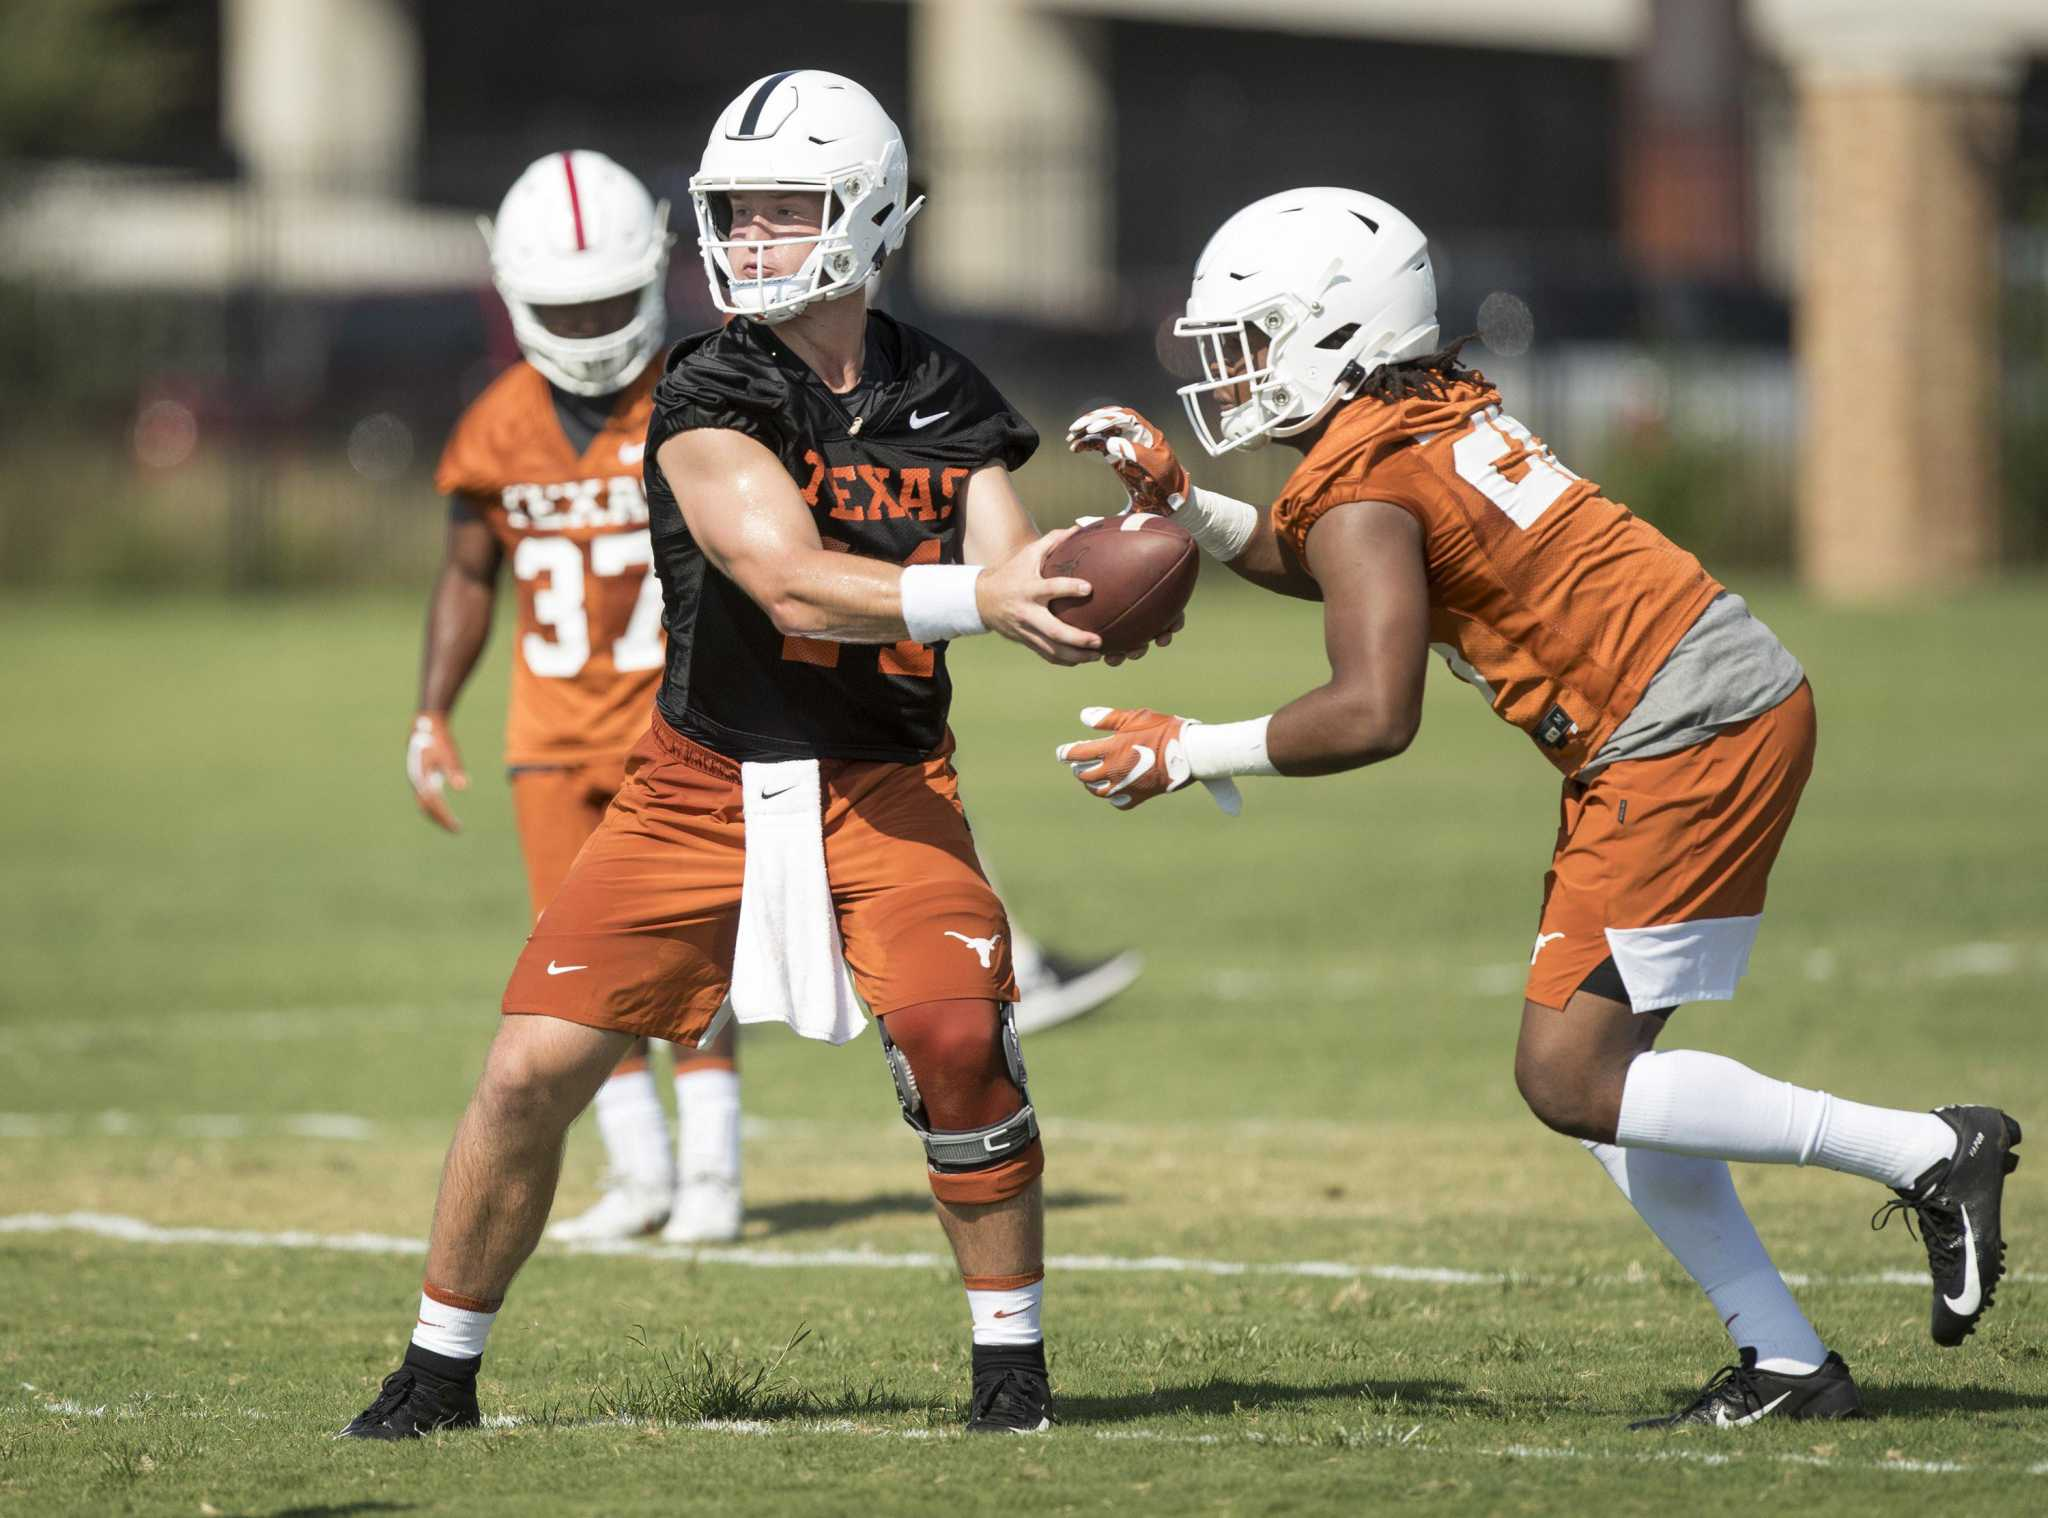 Texas, Texas A&M both in preseason AP Top 25